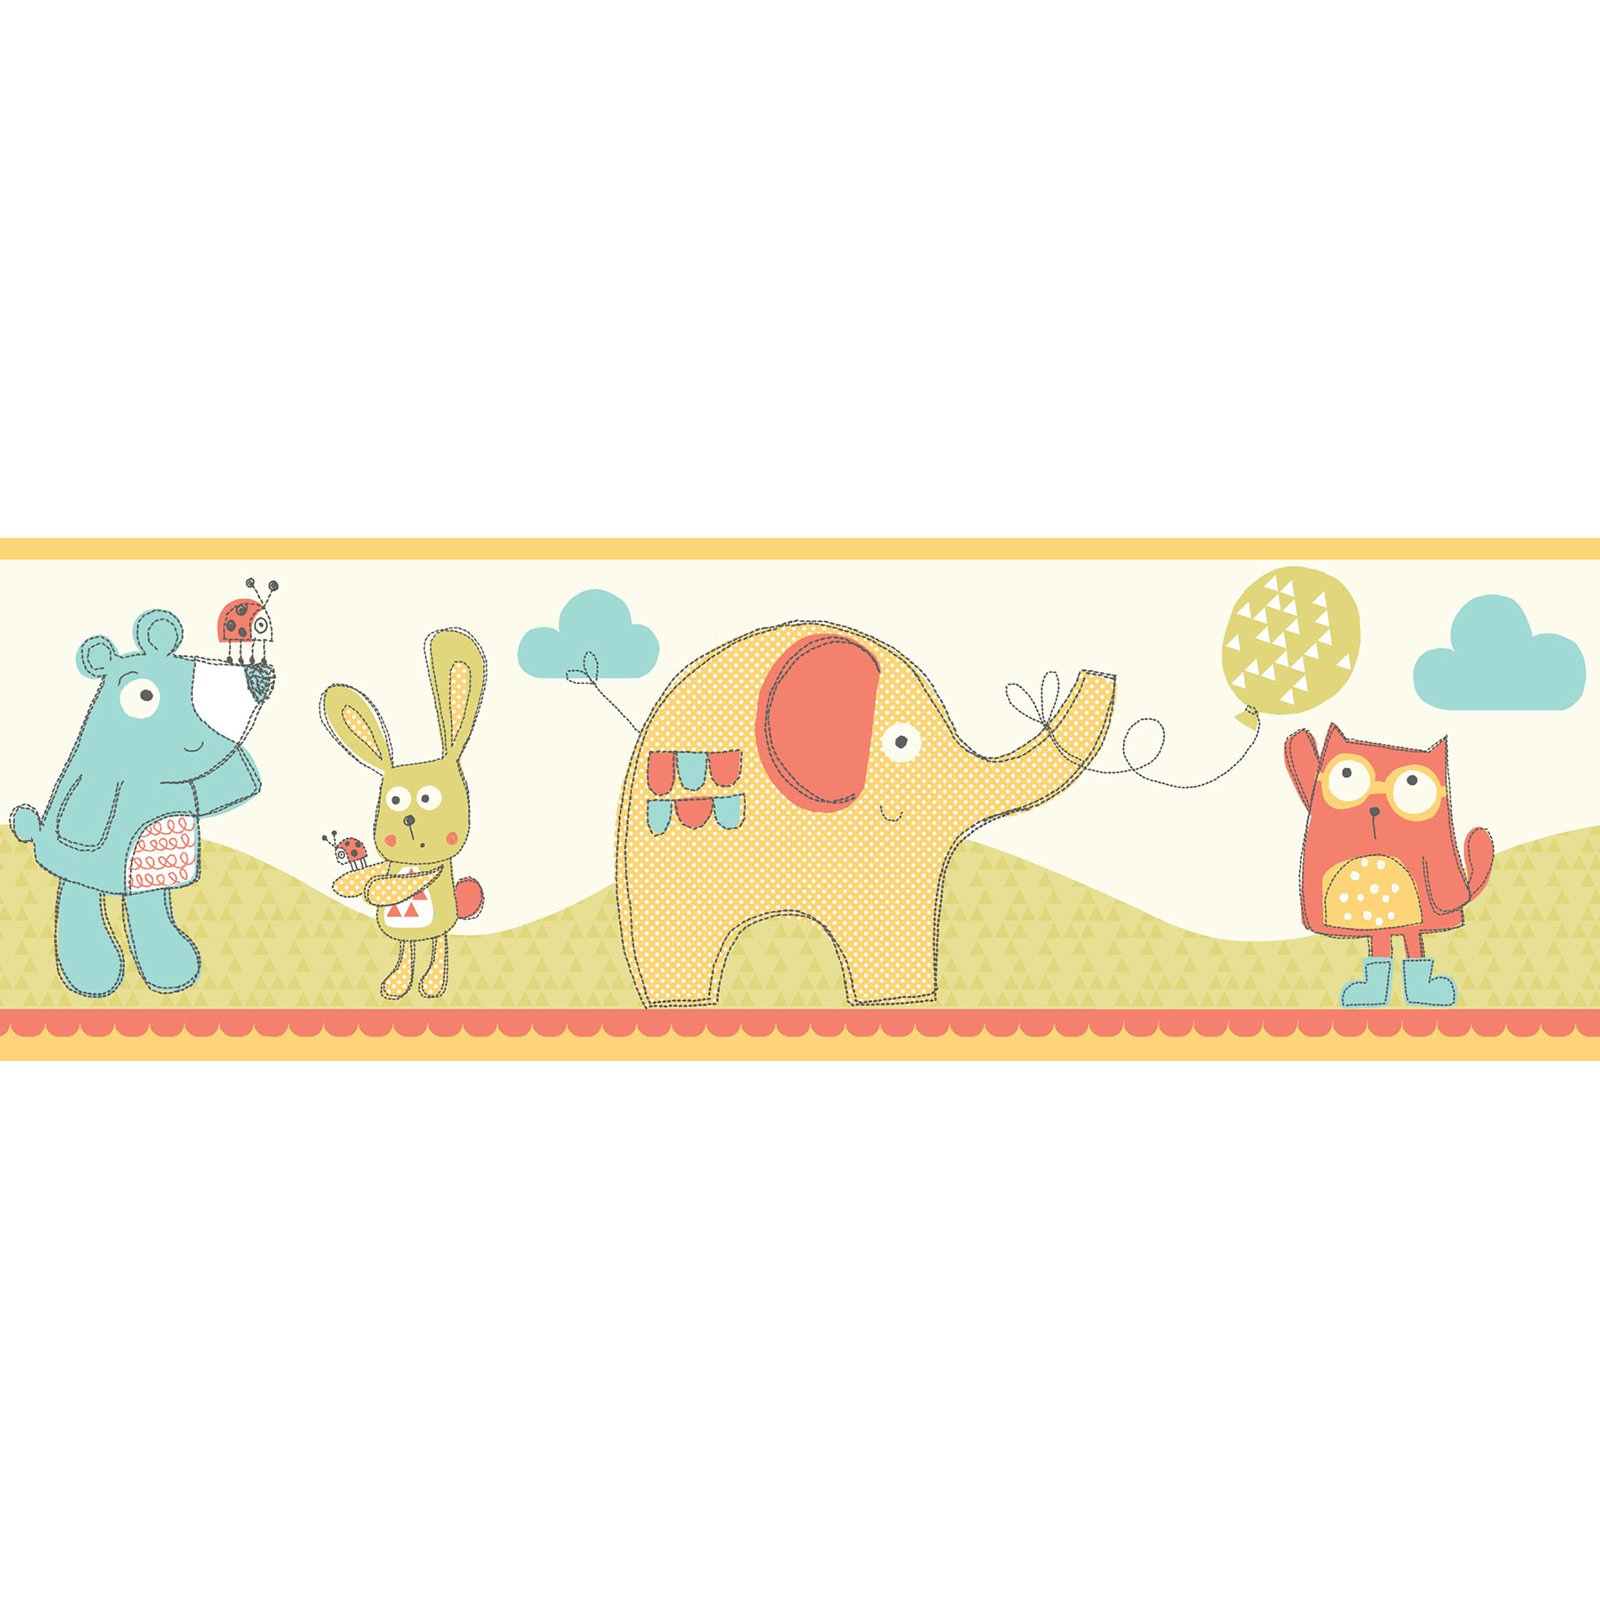 Fun4Walls Fly Up High Multi Peel and Stick Border - Set of 2